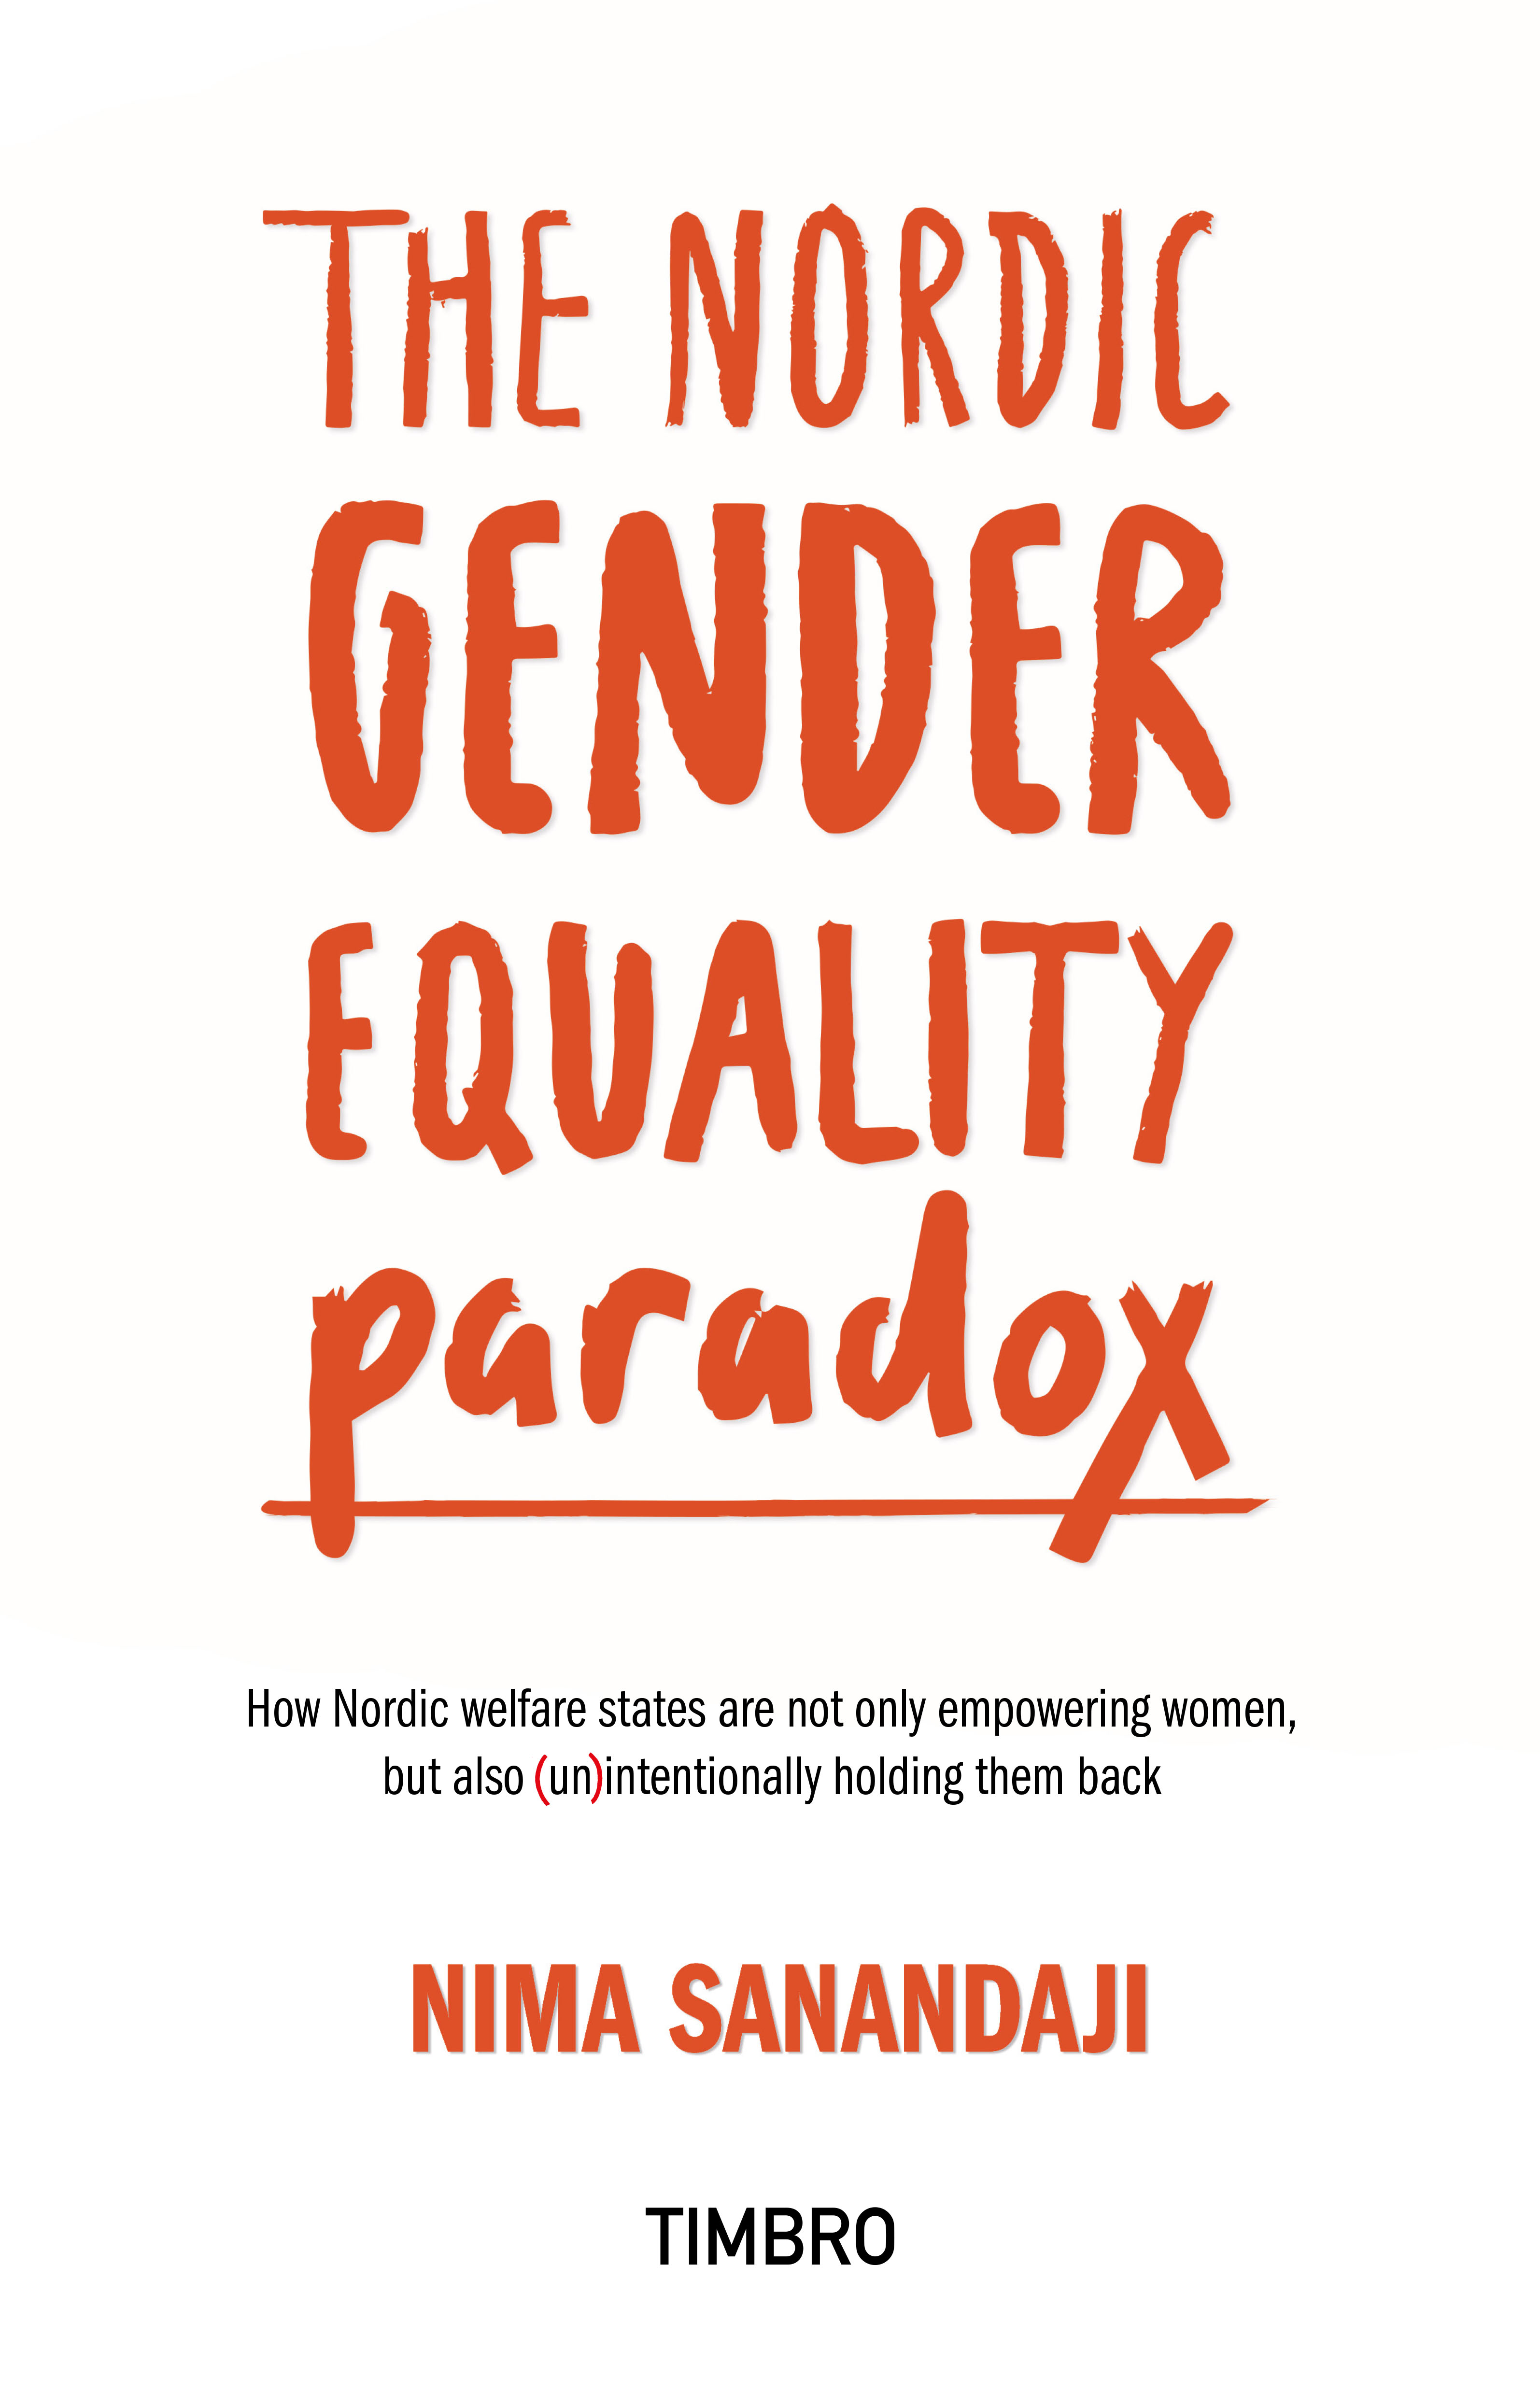 The Nordic Gender Equality Paradox